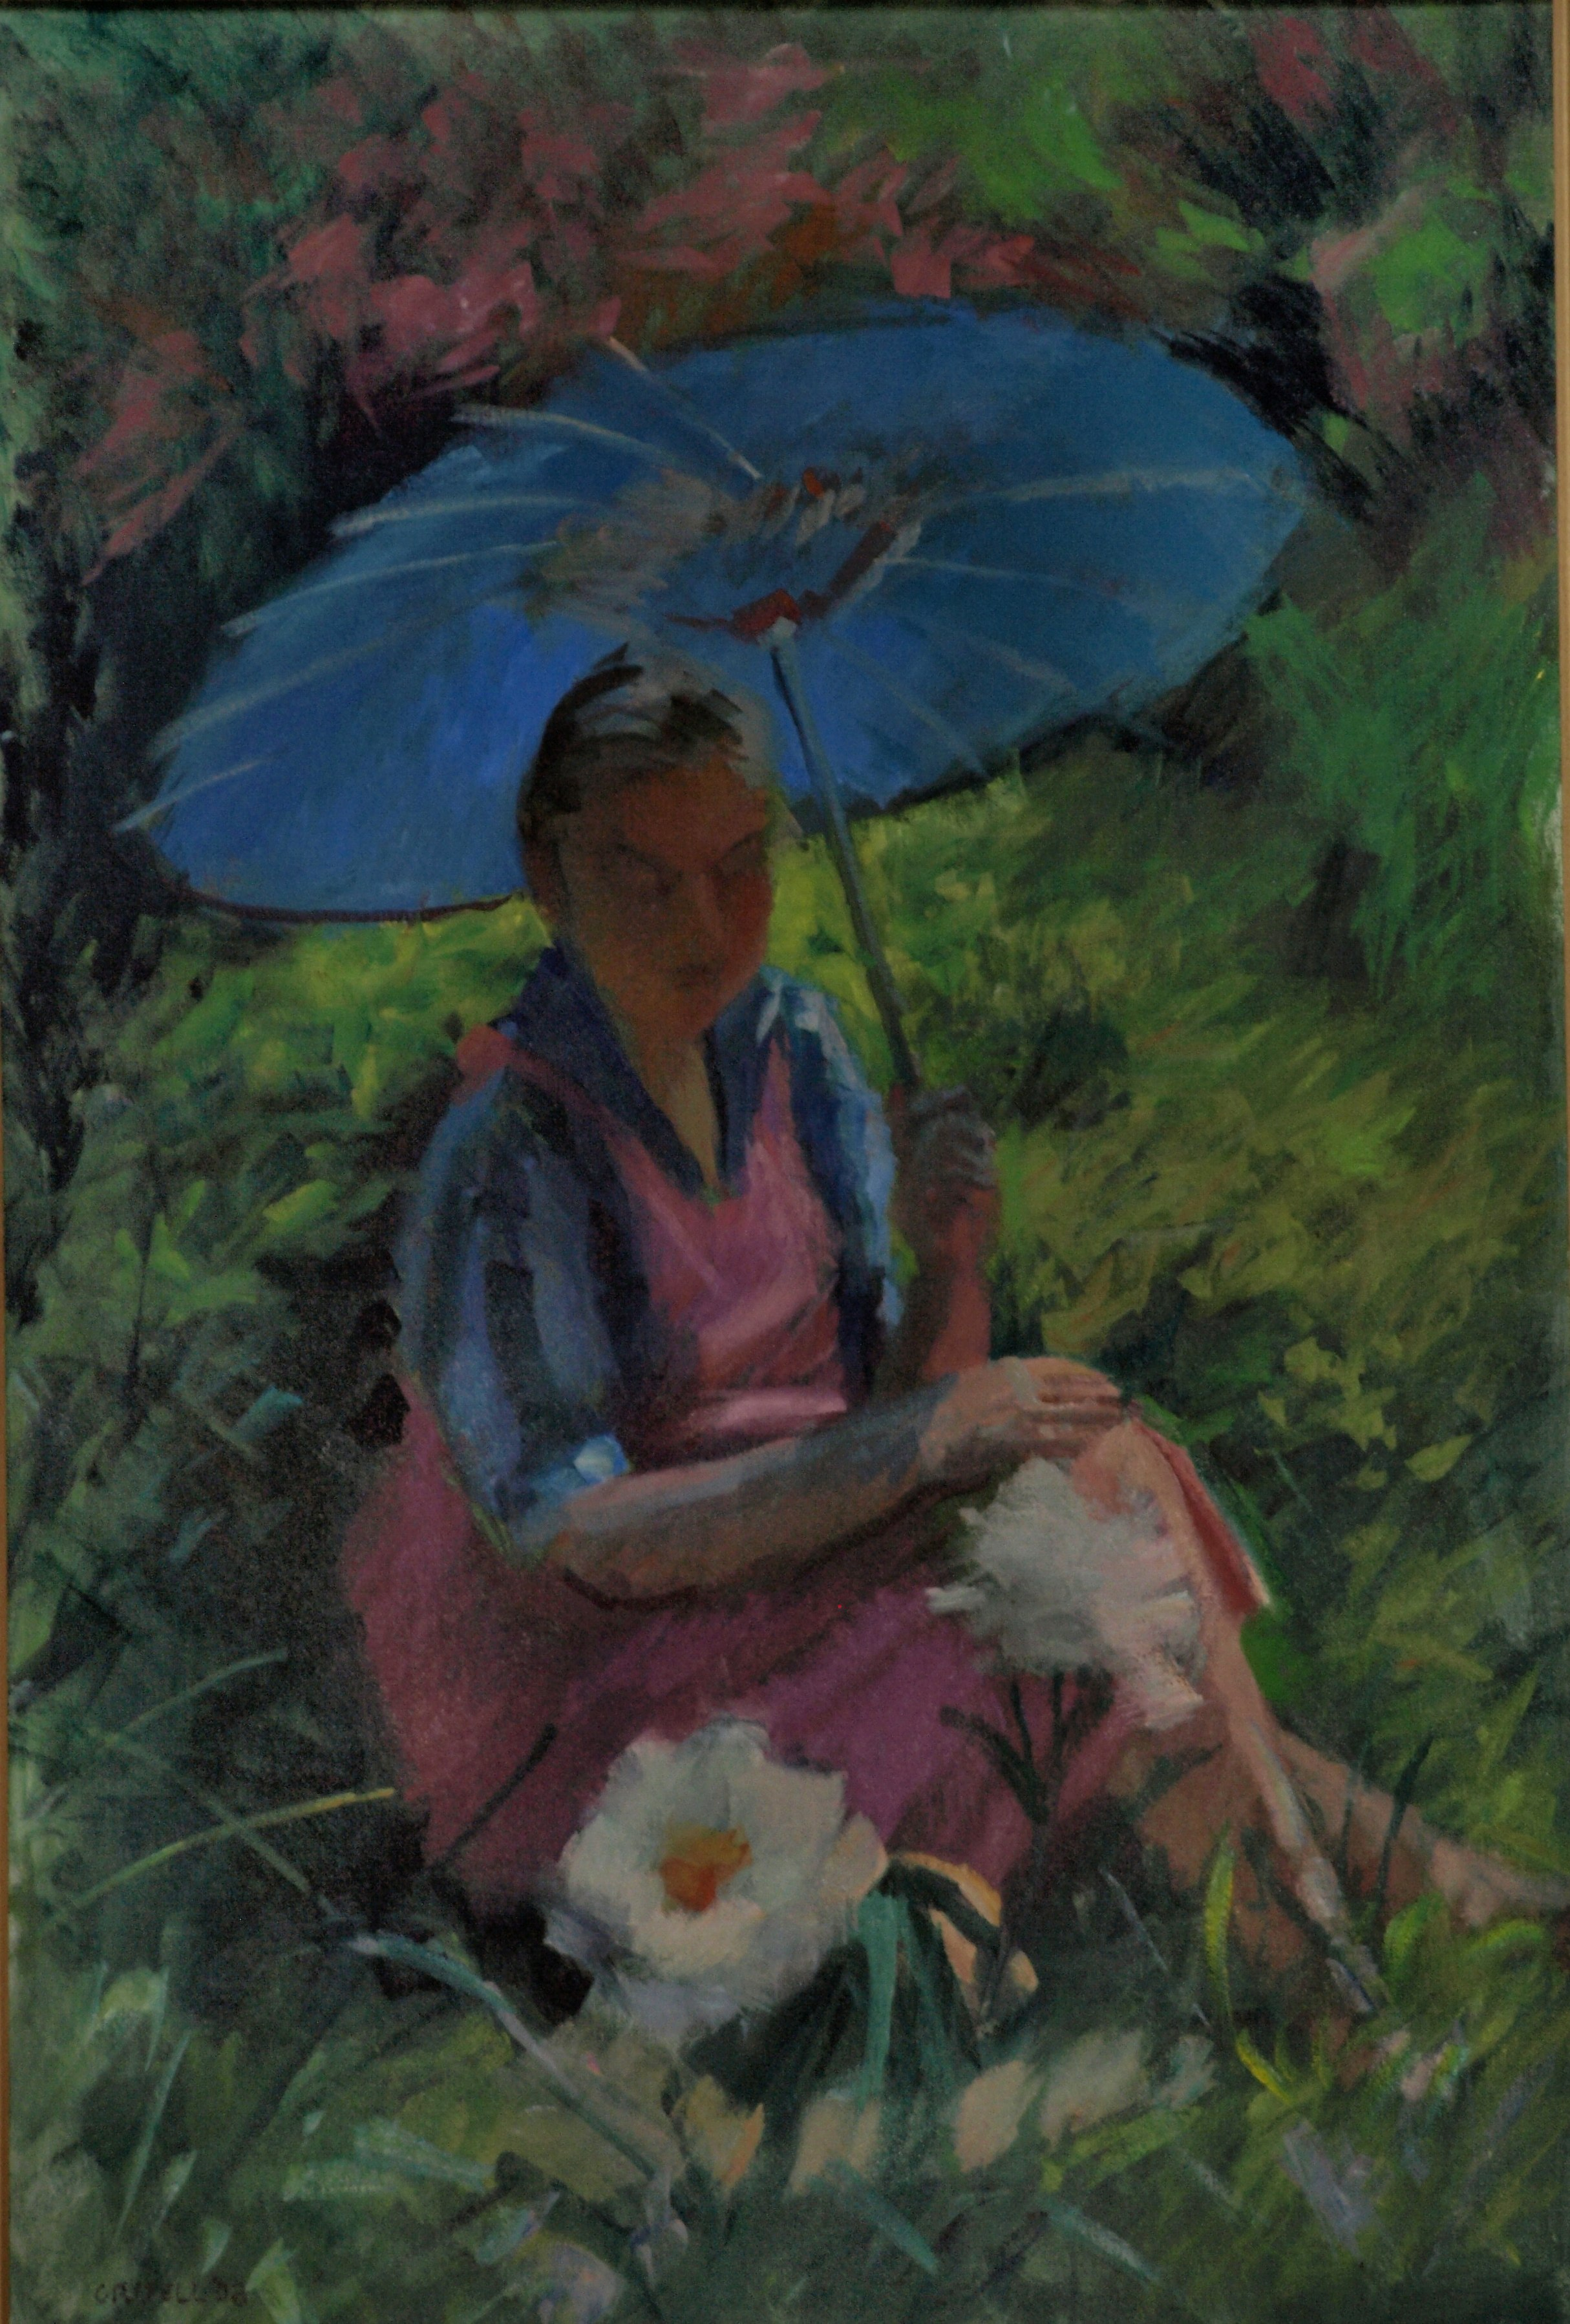 Seated Figure with Parasol, Oil on Canvas, 36 x 24 Inches, by Susan Grisell, $1200